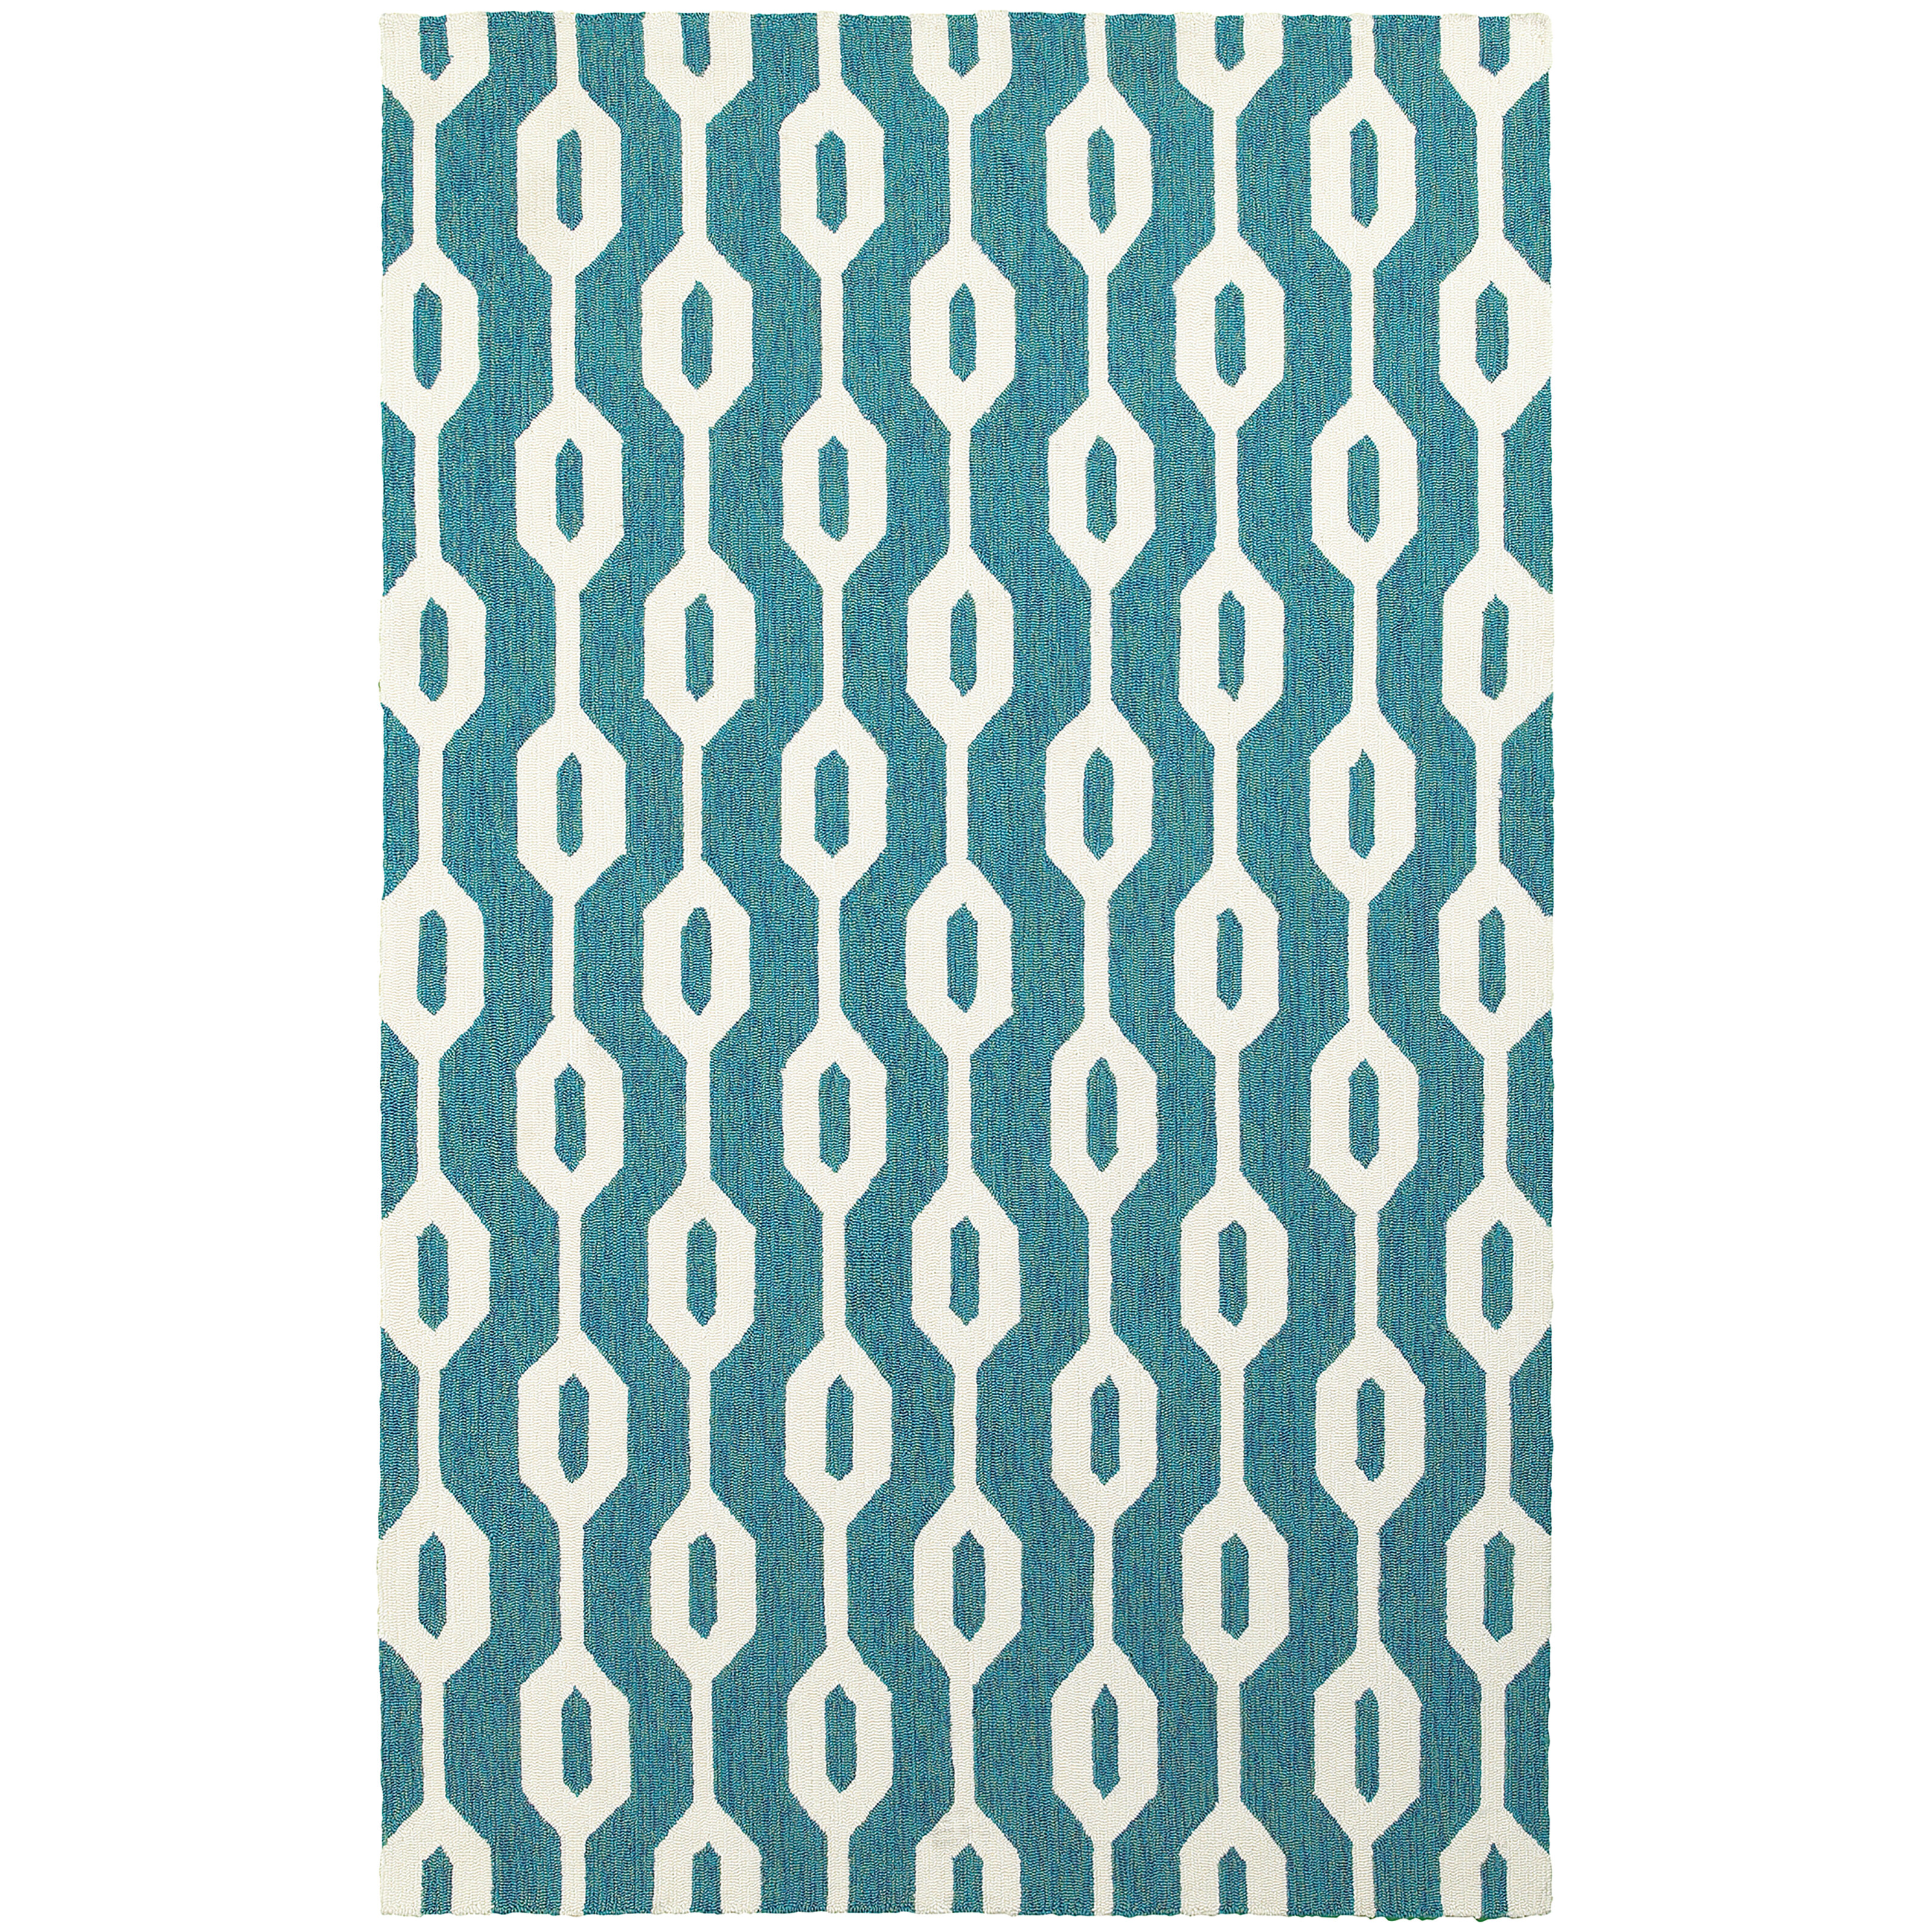 Tommy bahama rugs atrium geometric odgee hand woven blue for Bahama towel chaise cover